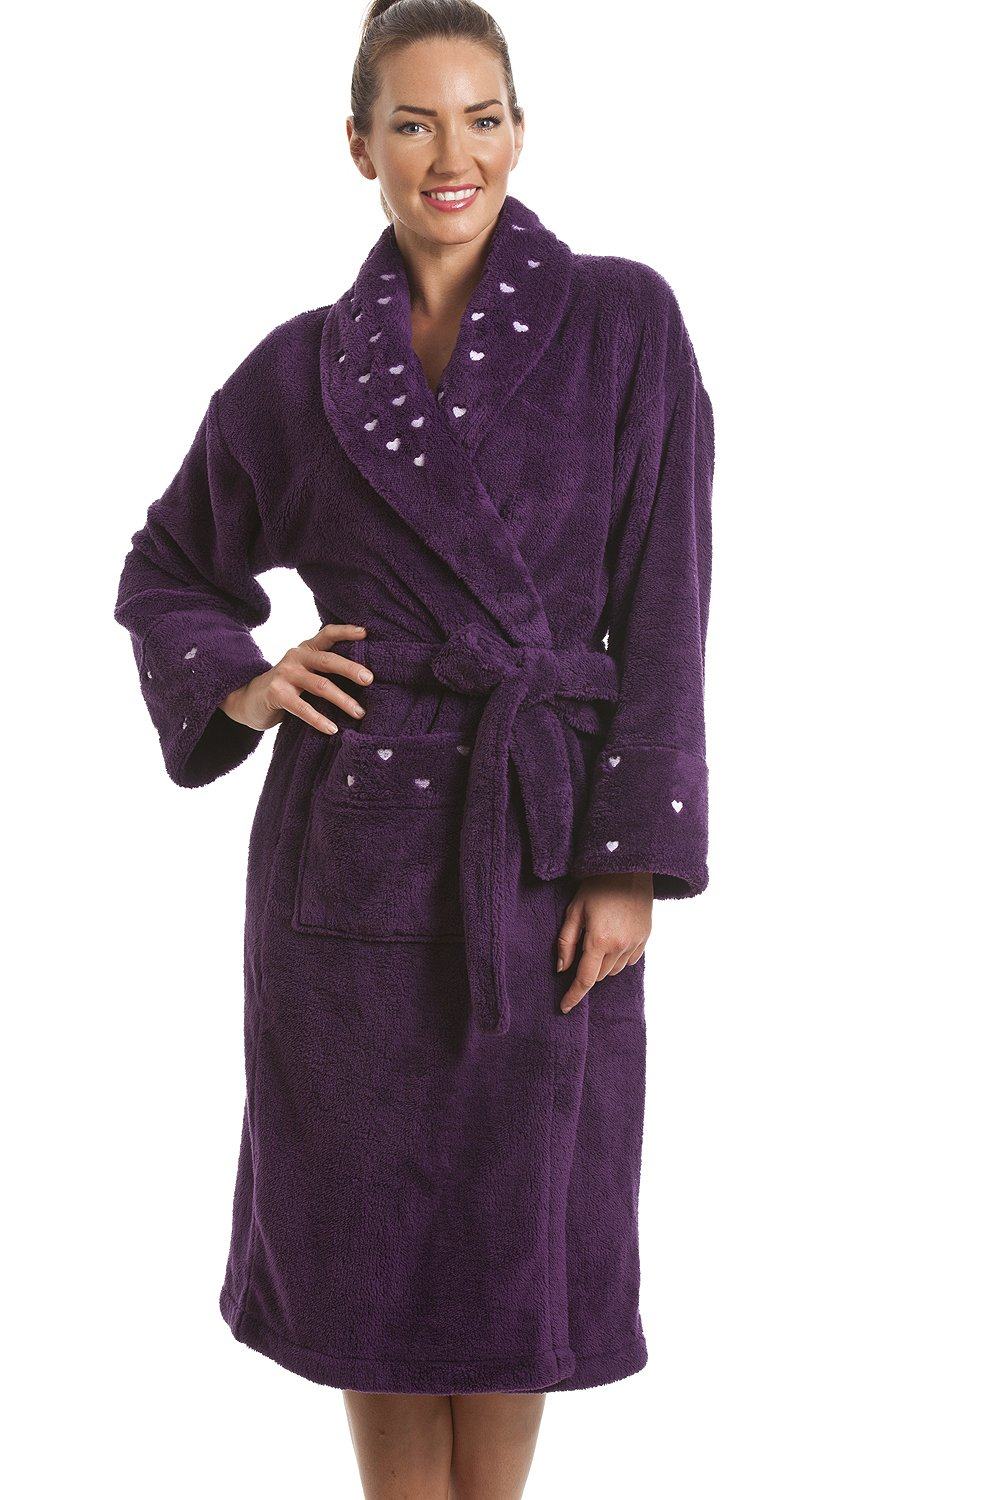 Buy TexereSilk Women's Luxury Long Silk Bathrobe - Sleepwear Robe by (Beautibliss) and other Robes at 0549sahibi.tk Our wide selection is elegible for free shipping and free returns.